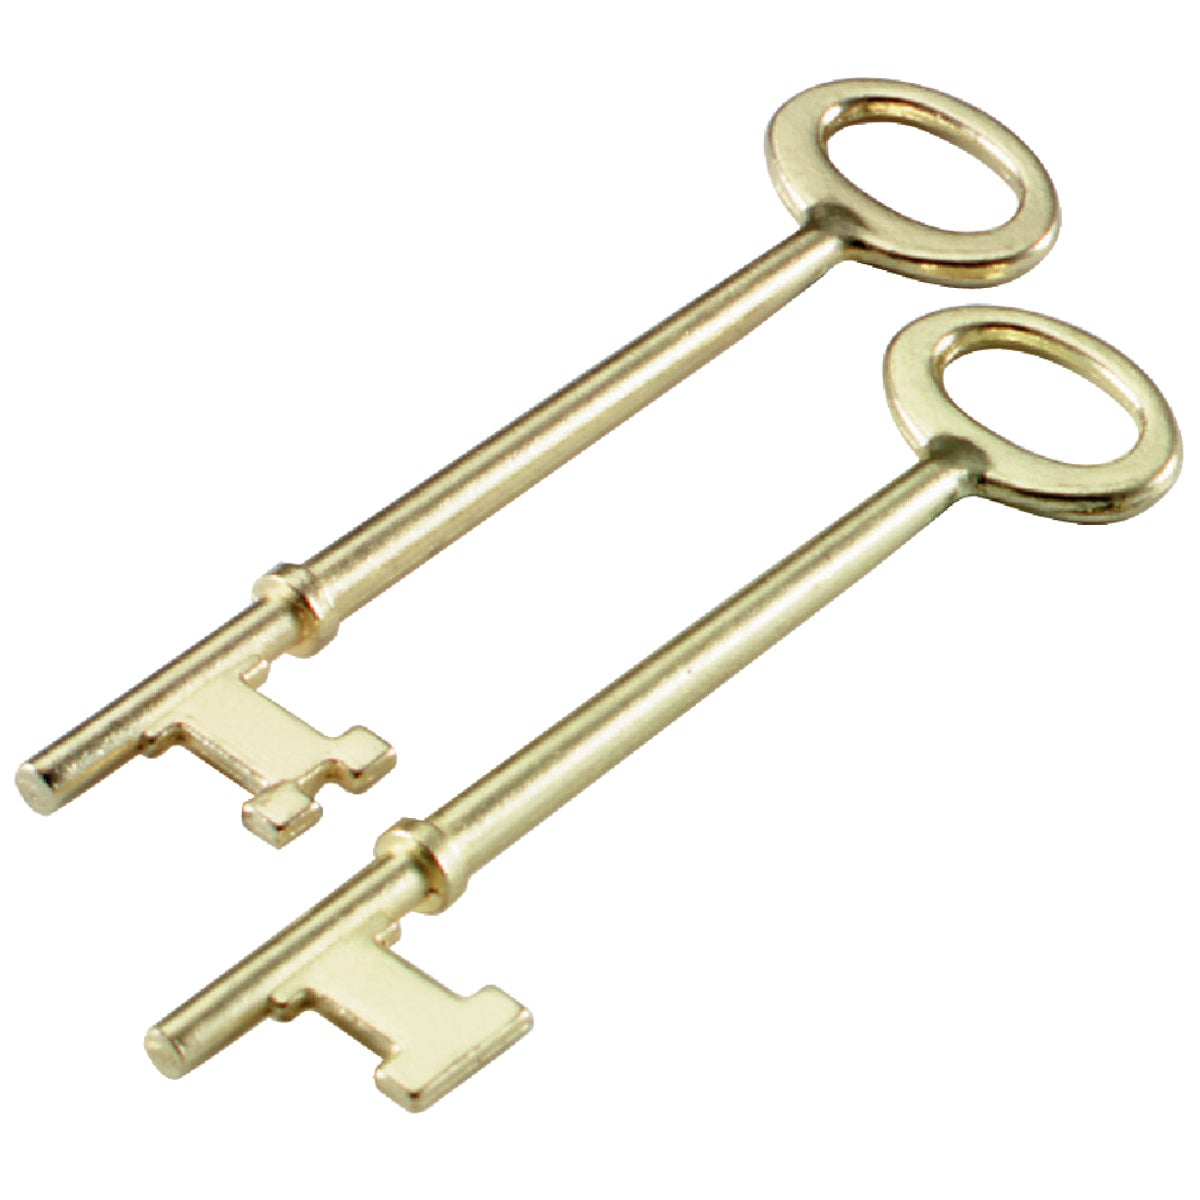 2PK SKELETON KEY - 87202 by Lucky Line Prod Inc